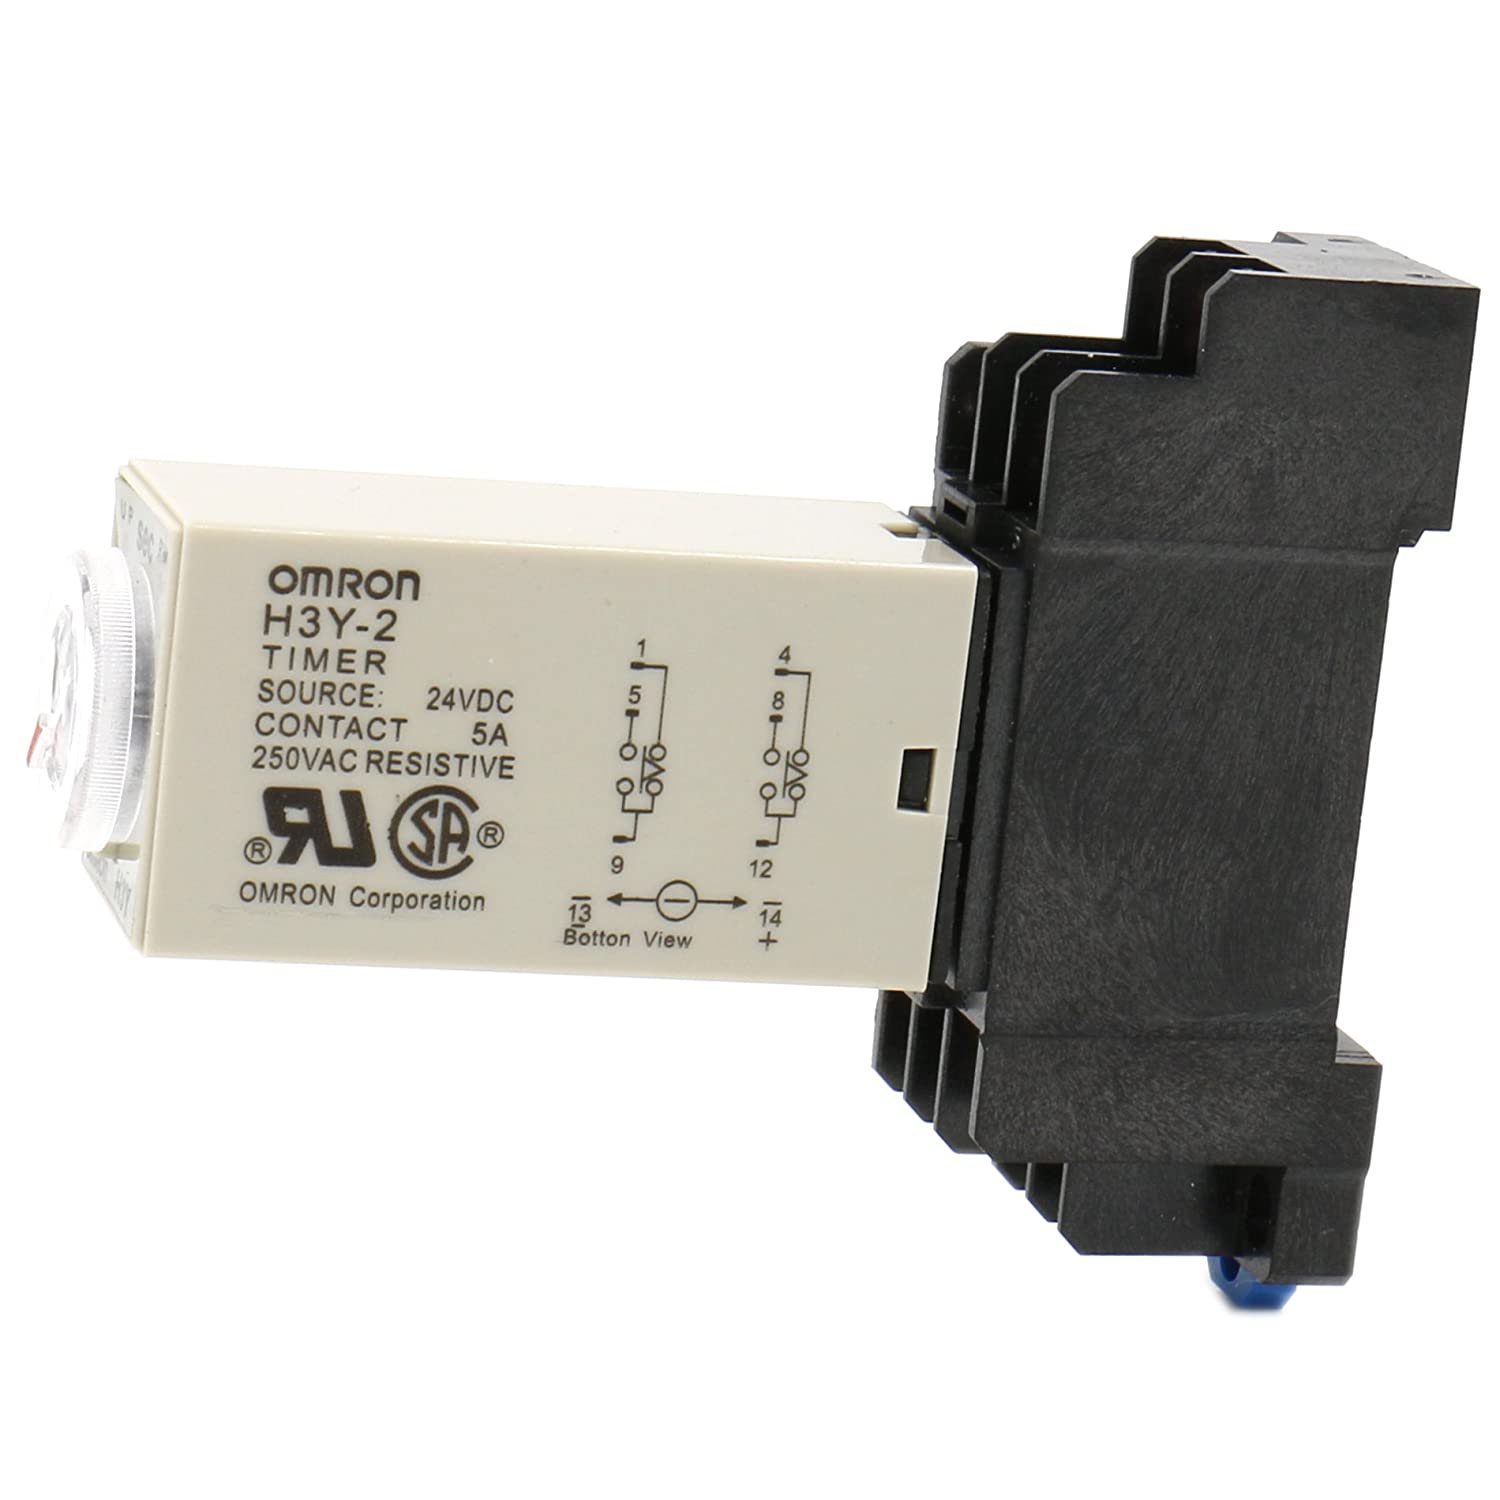 Heschen Timer Delay Relay H3Y-2 24VDC 0-60 Minute 250VAC 5A 8Pin terminal DPDT with DYF08 35mm DIN Rail Socket Base Heschen Electric Co.Ltd H3Y-2-24V-60M